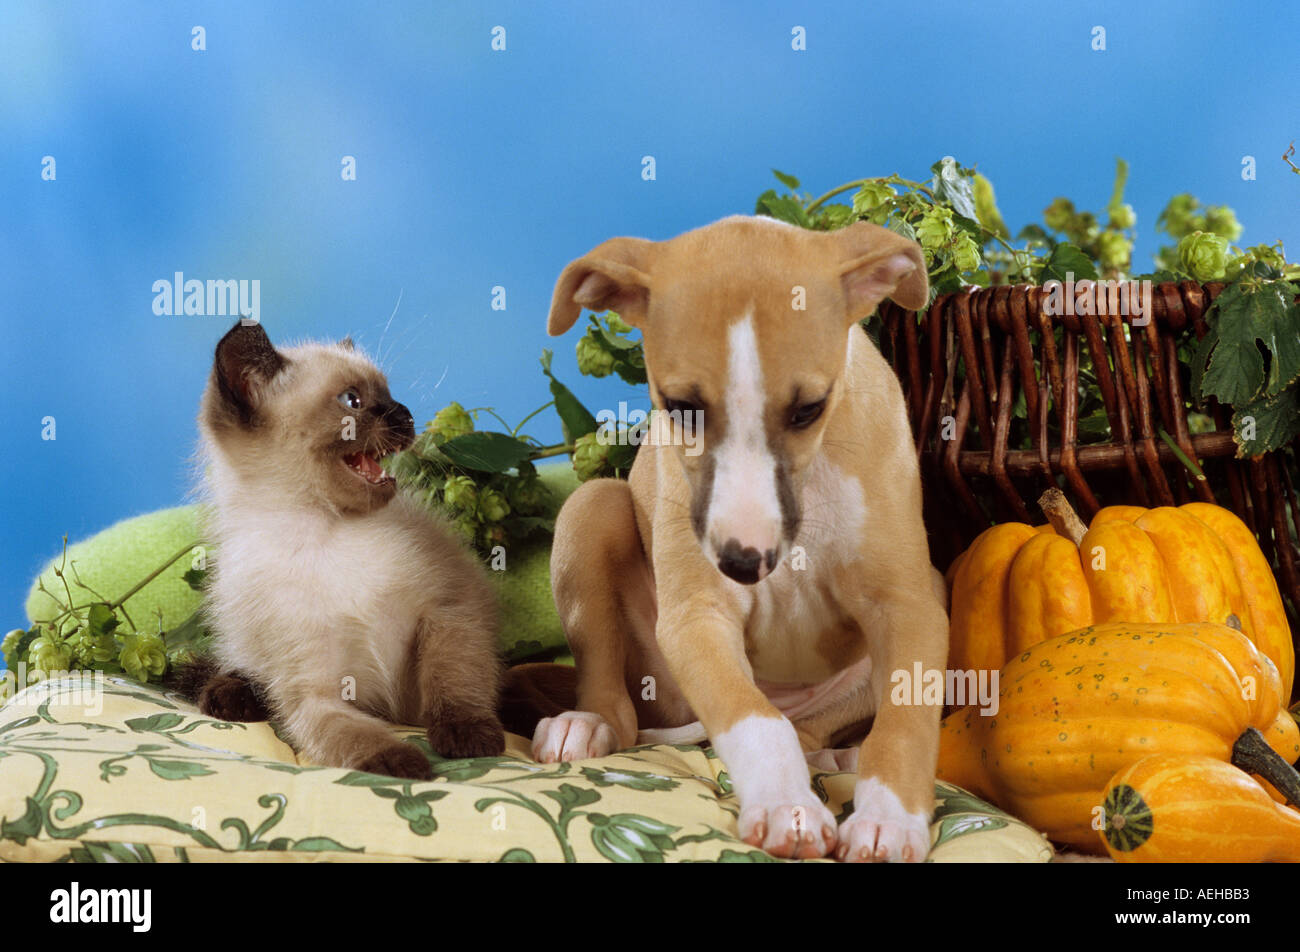 young Siamese cat snarling at a Whippet dog - puppy - Stock Image